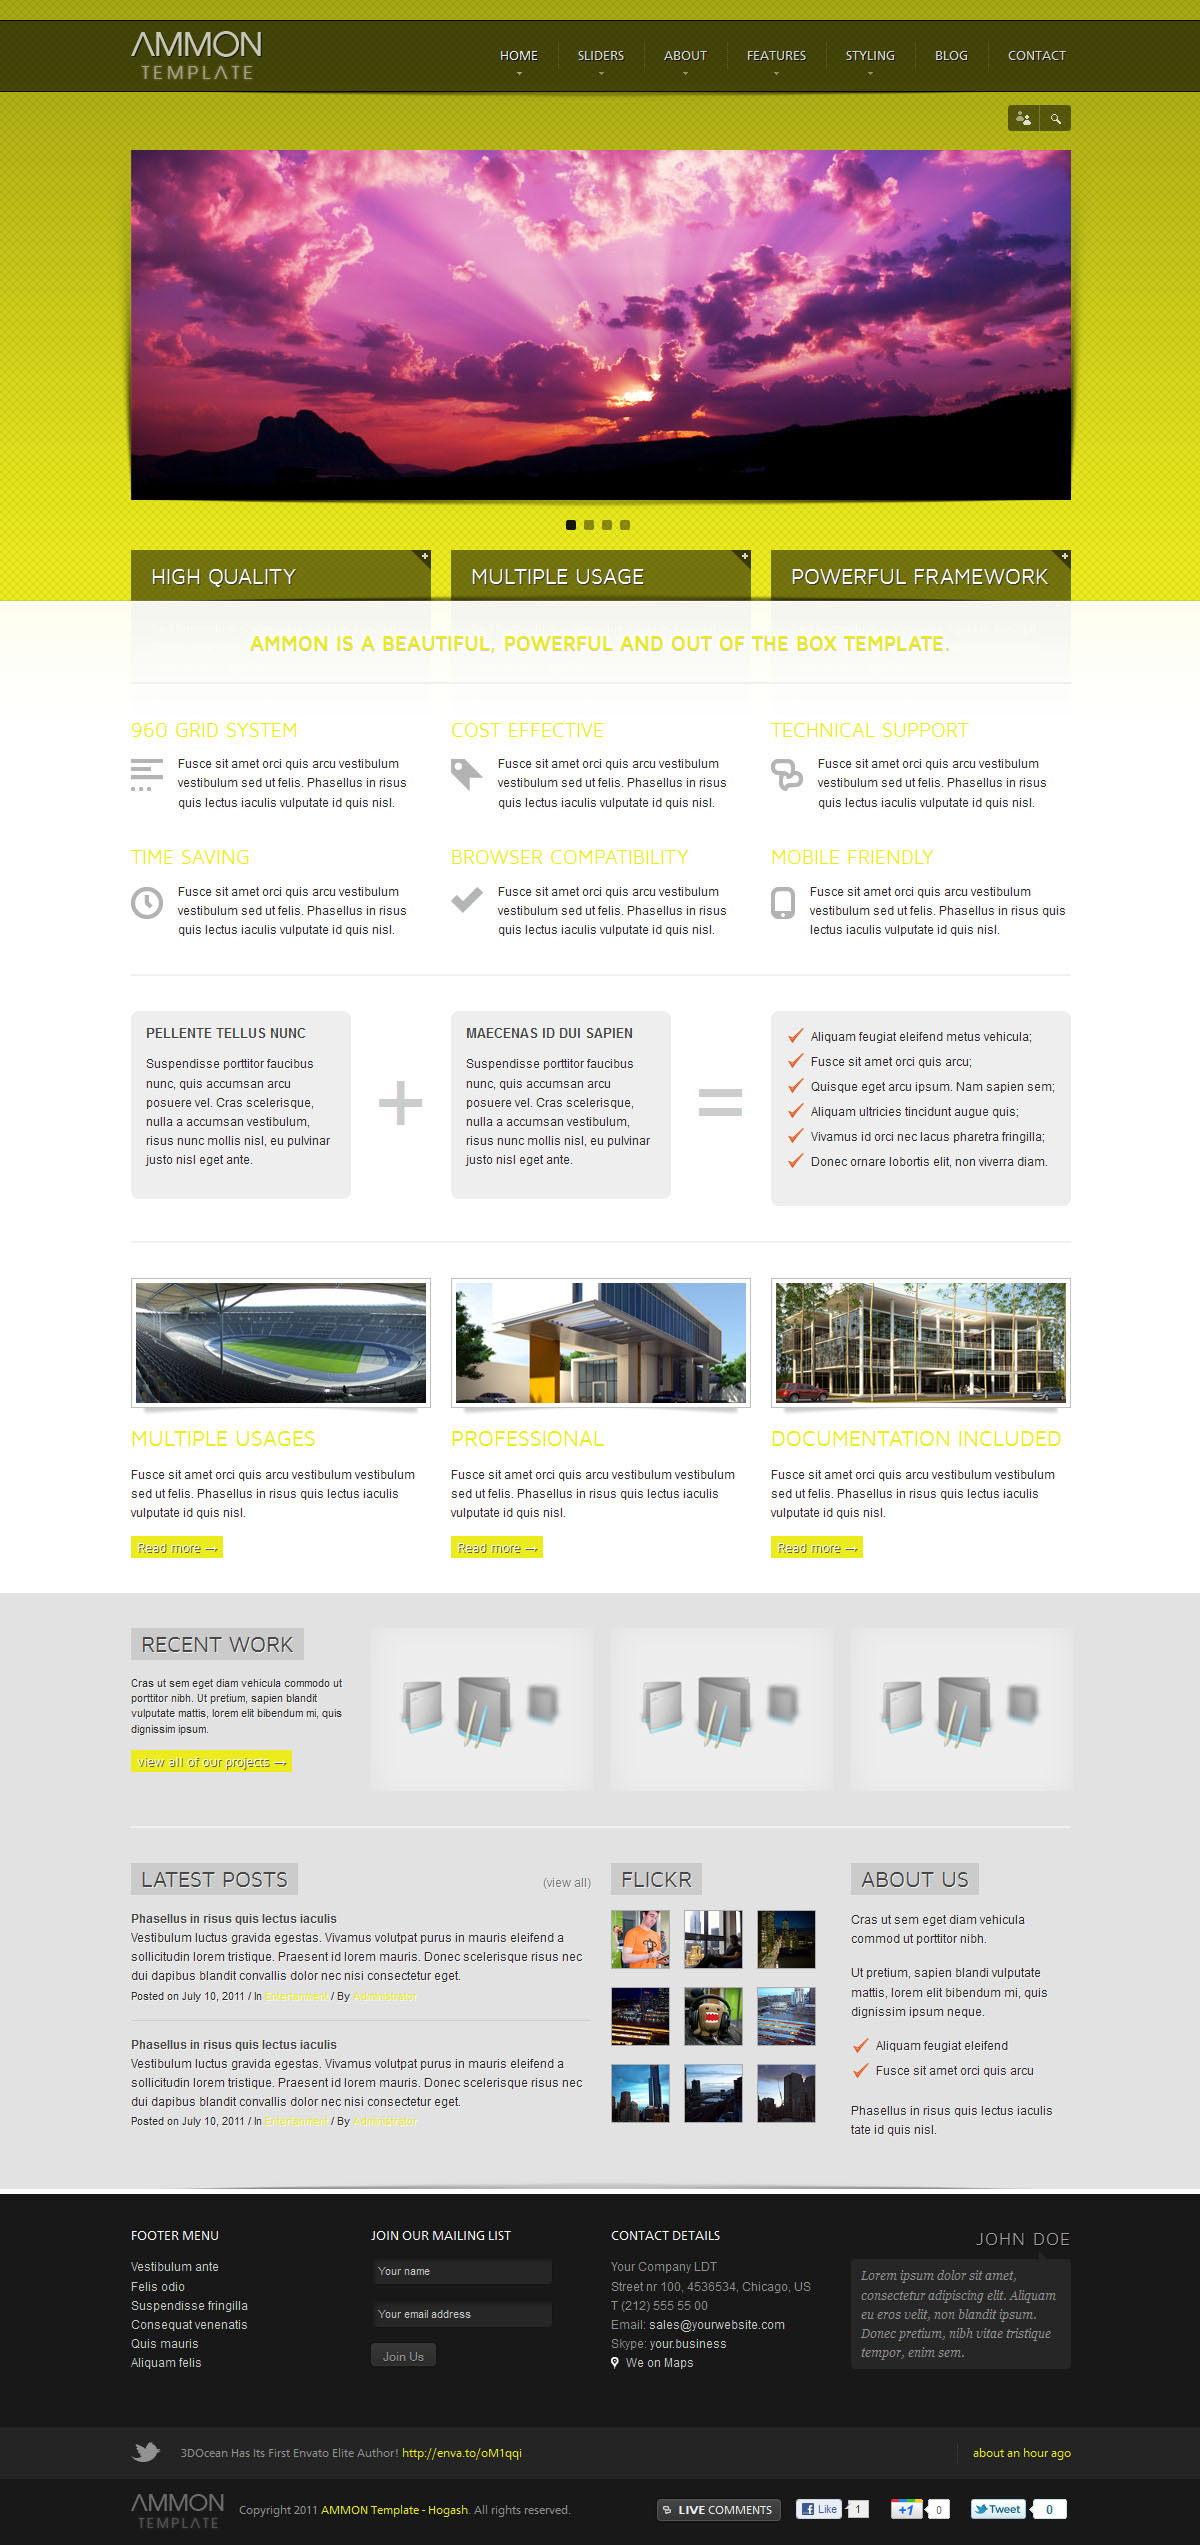 Ammon Template - GENERAL PAGE - HOMEPAGE - NIVO SLIDER